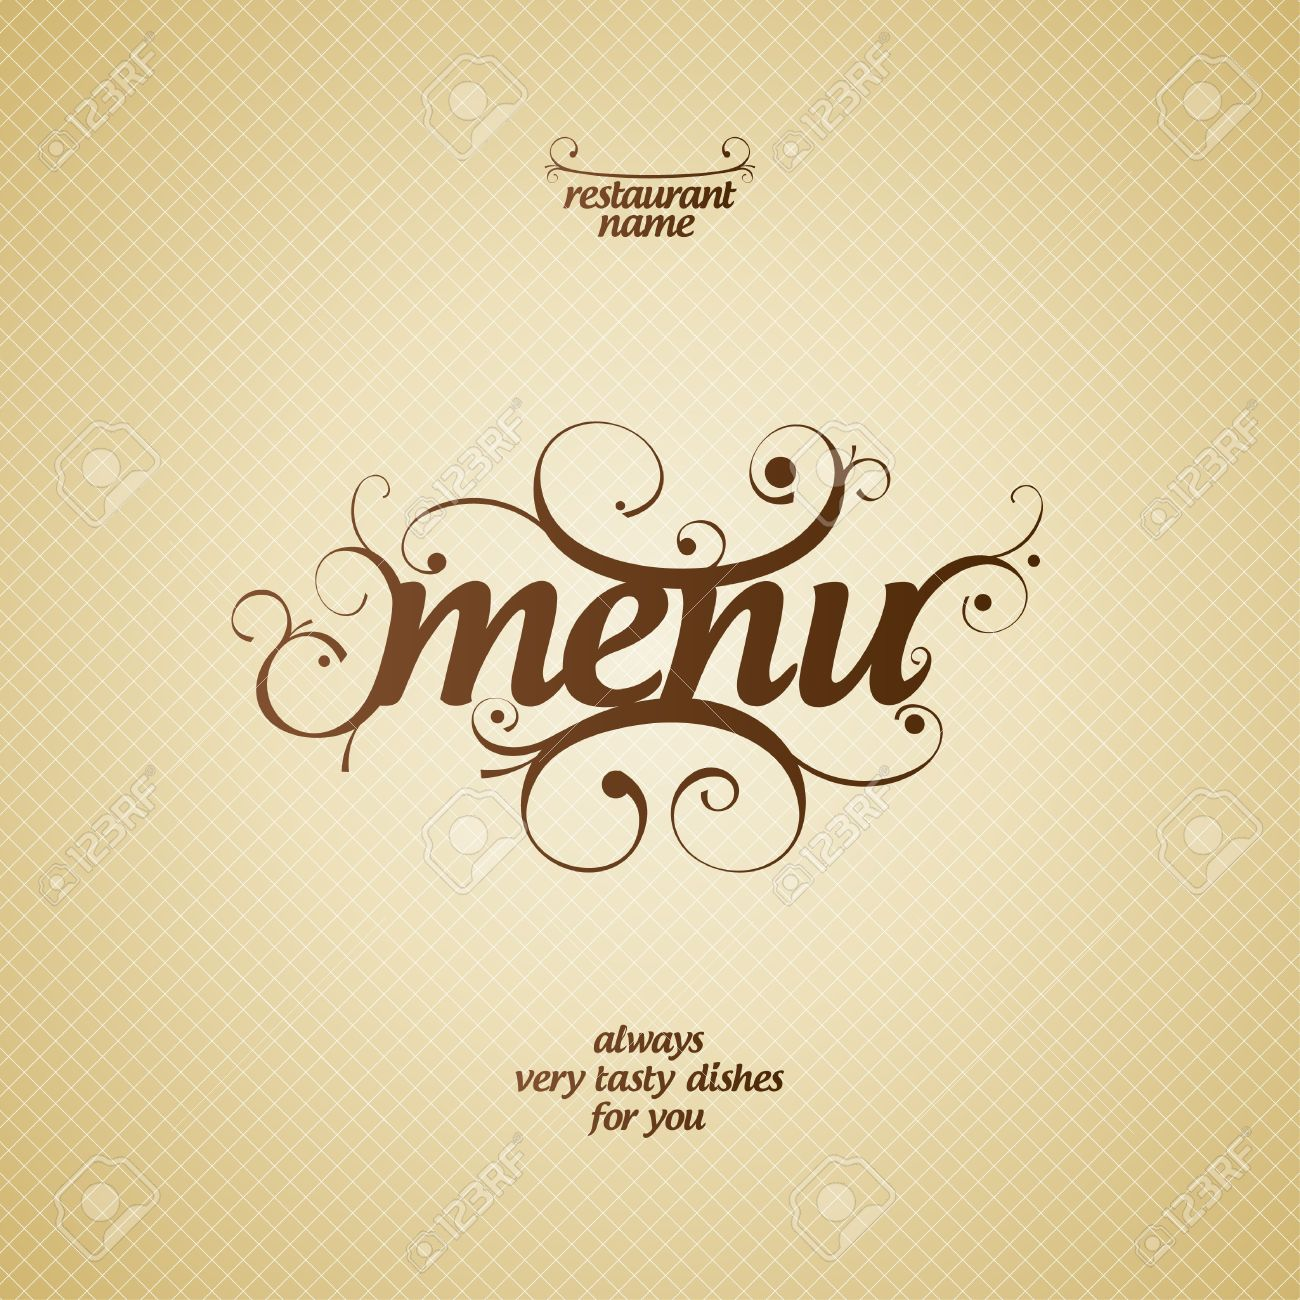 restaurant menu card design template. royalty free cliparts, vectors